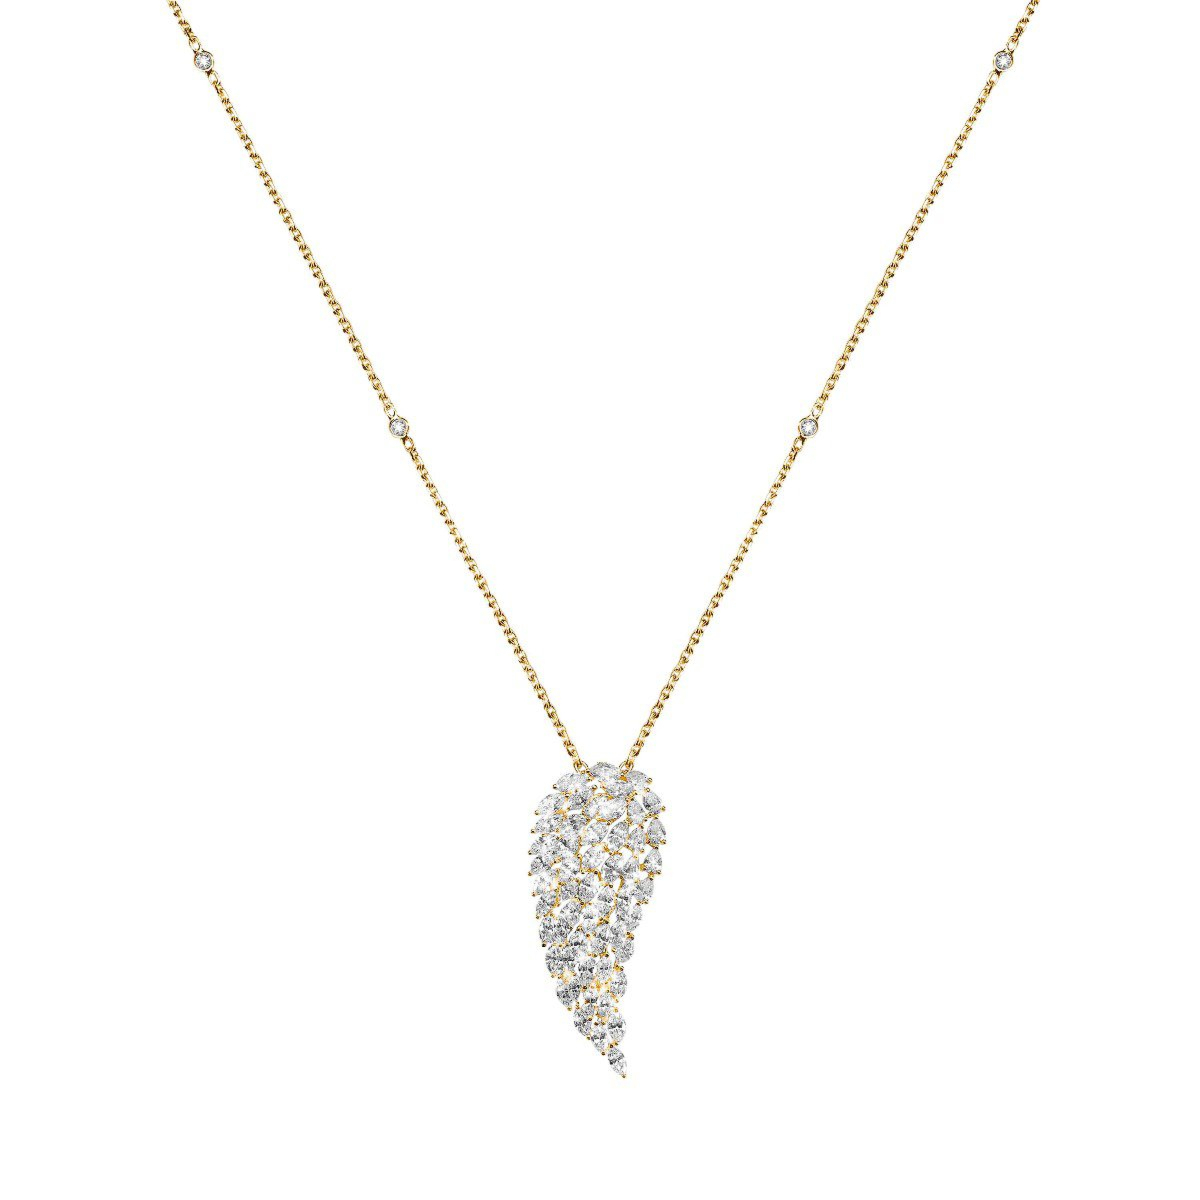 Angel Vertical Pertaining To Most Up To Date White Gold Diamond Sautoir Necklaces (View 23 of 25)